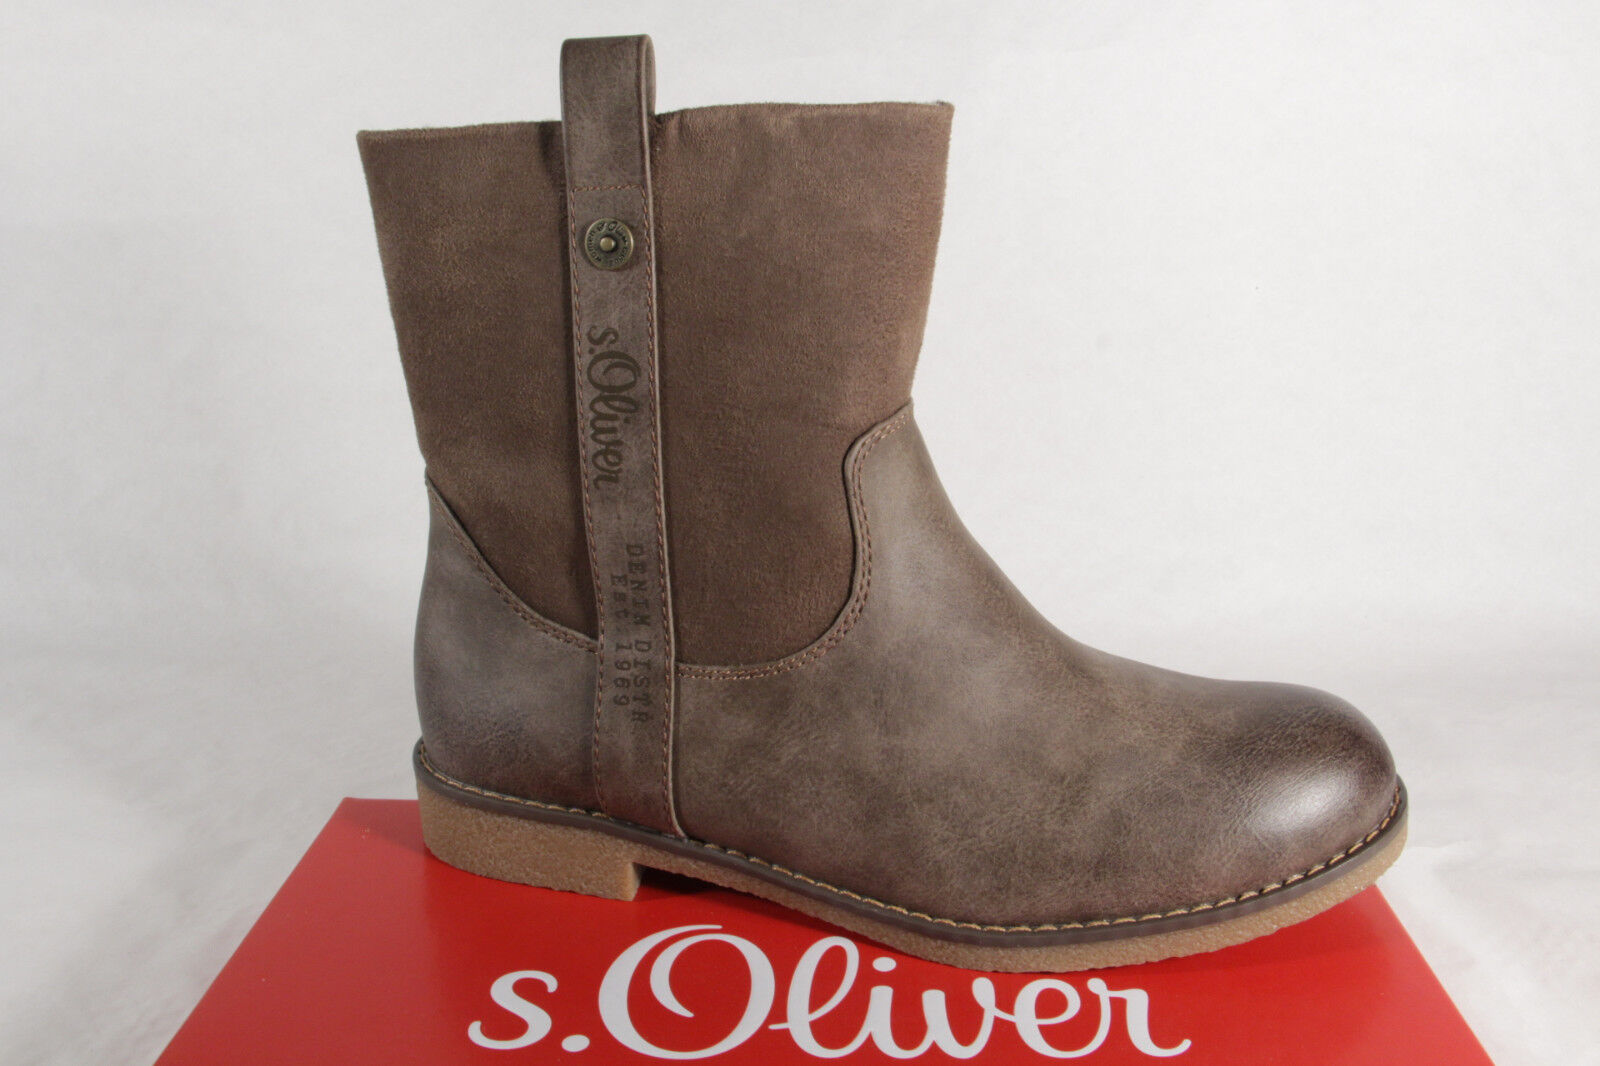 S.Oliver Women's Ankle Boots Ankle Boots Pepper NEW